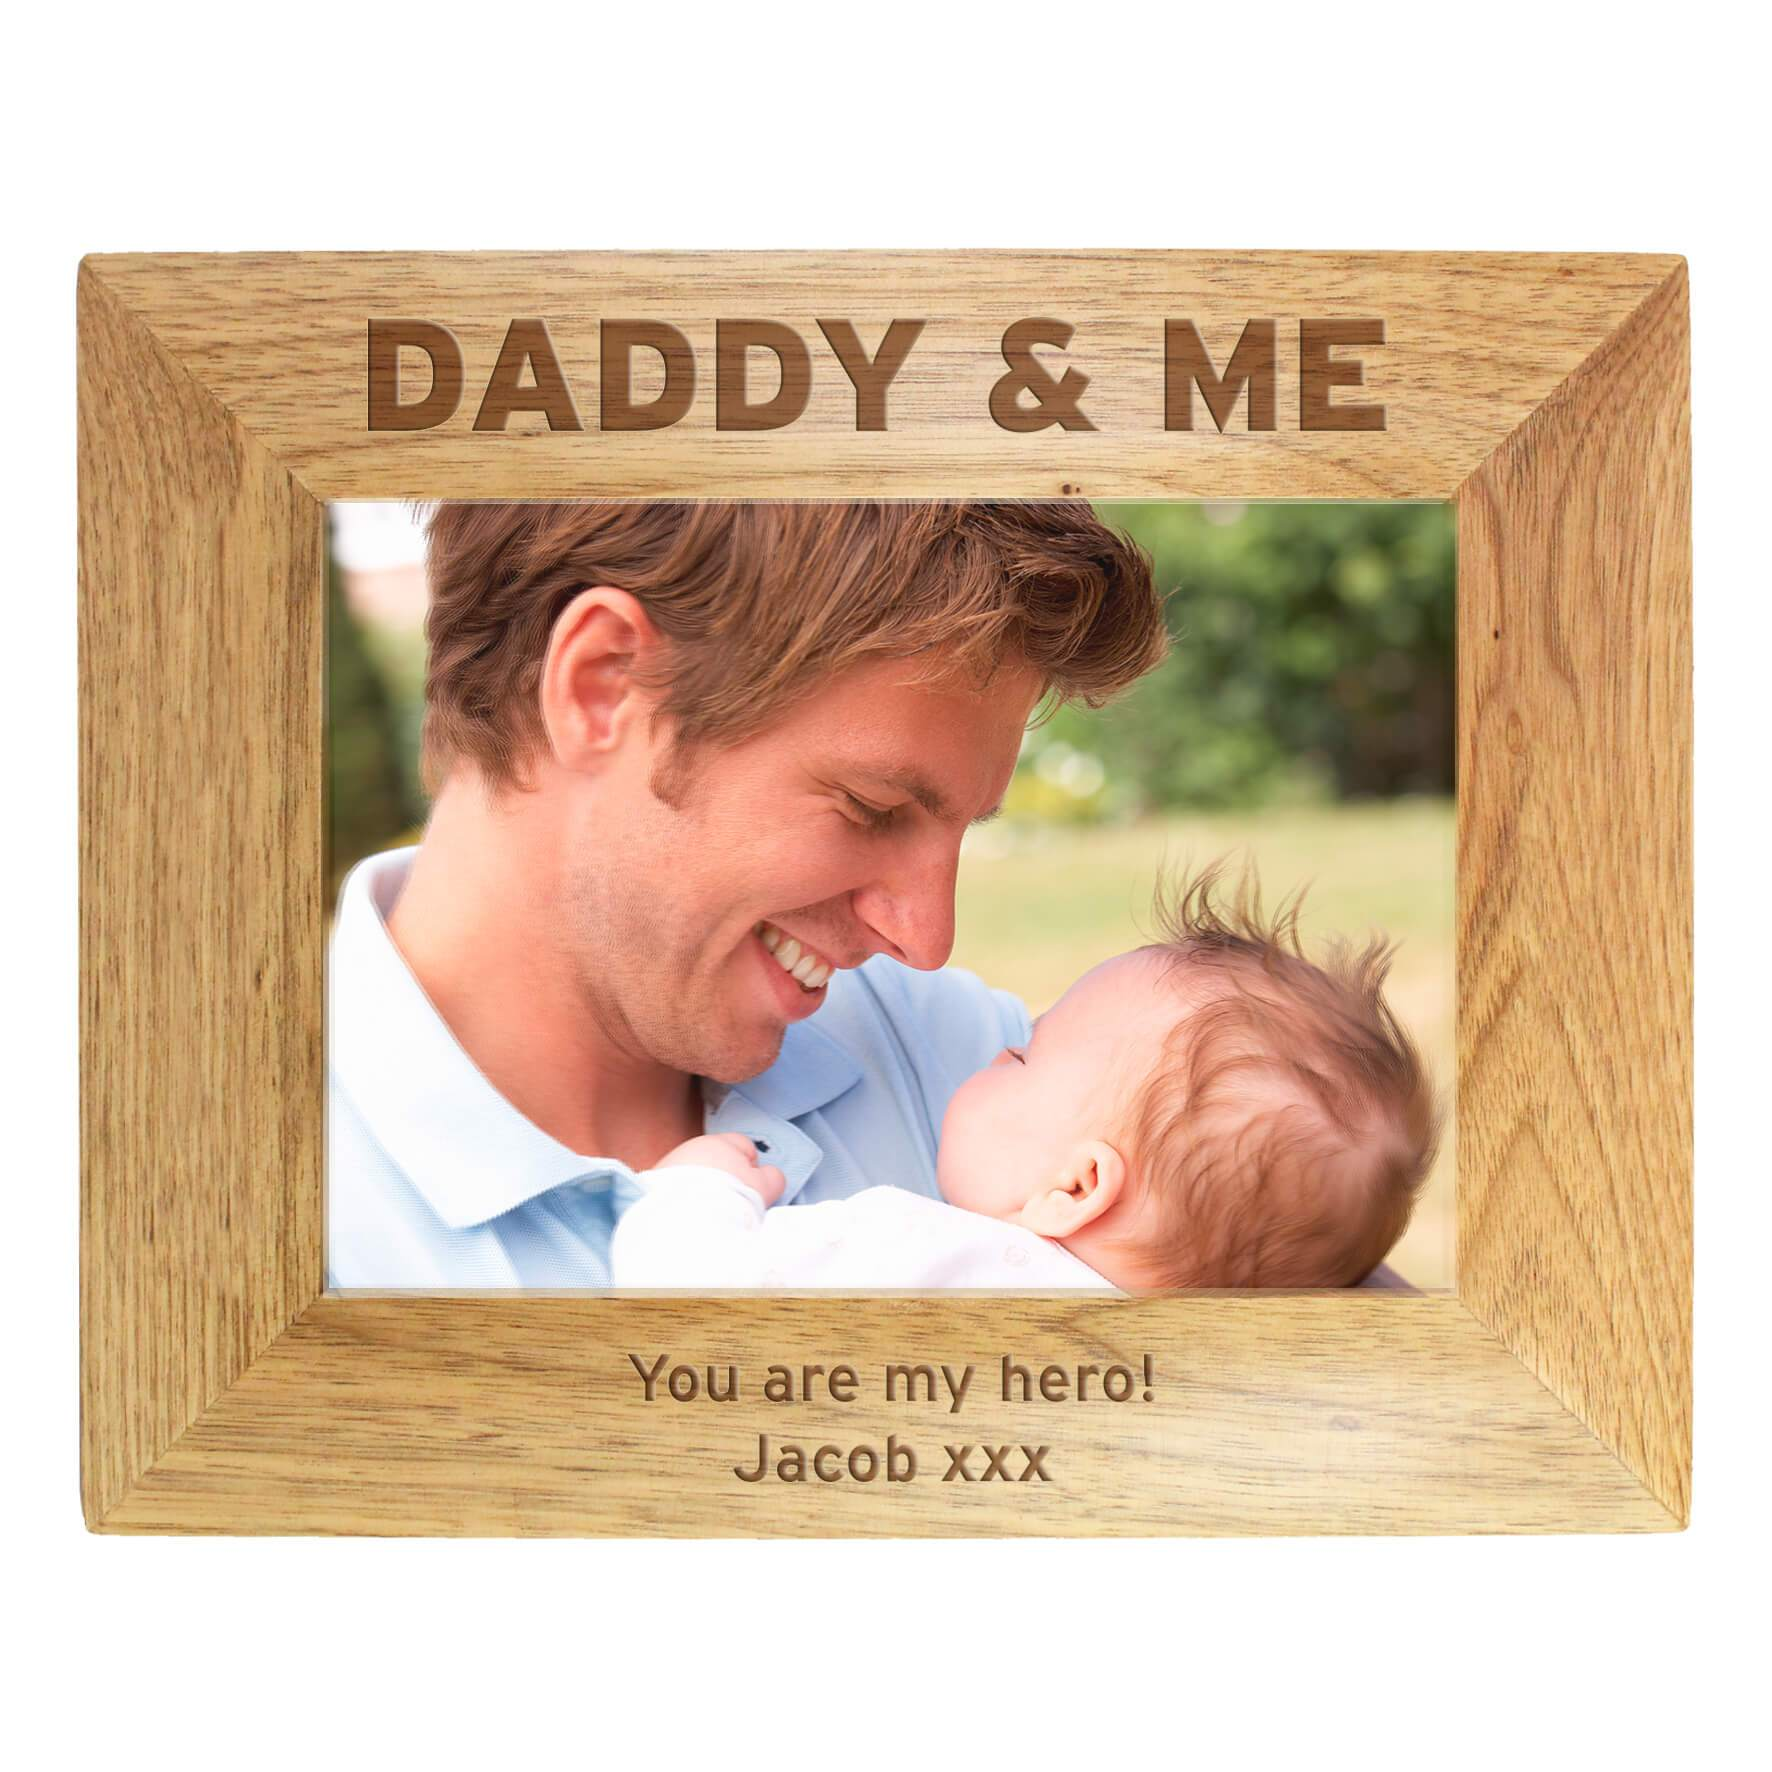 Personalizable Daddy and Me Wooden Photo Frame